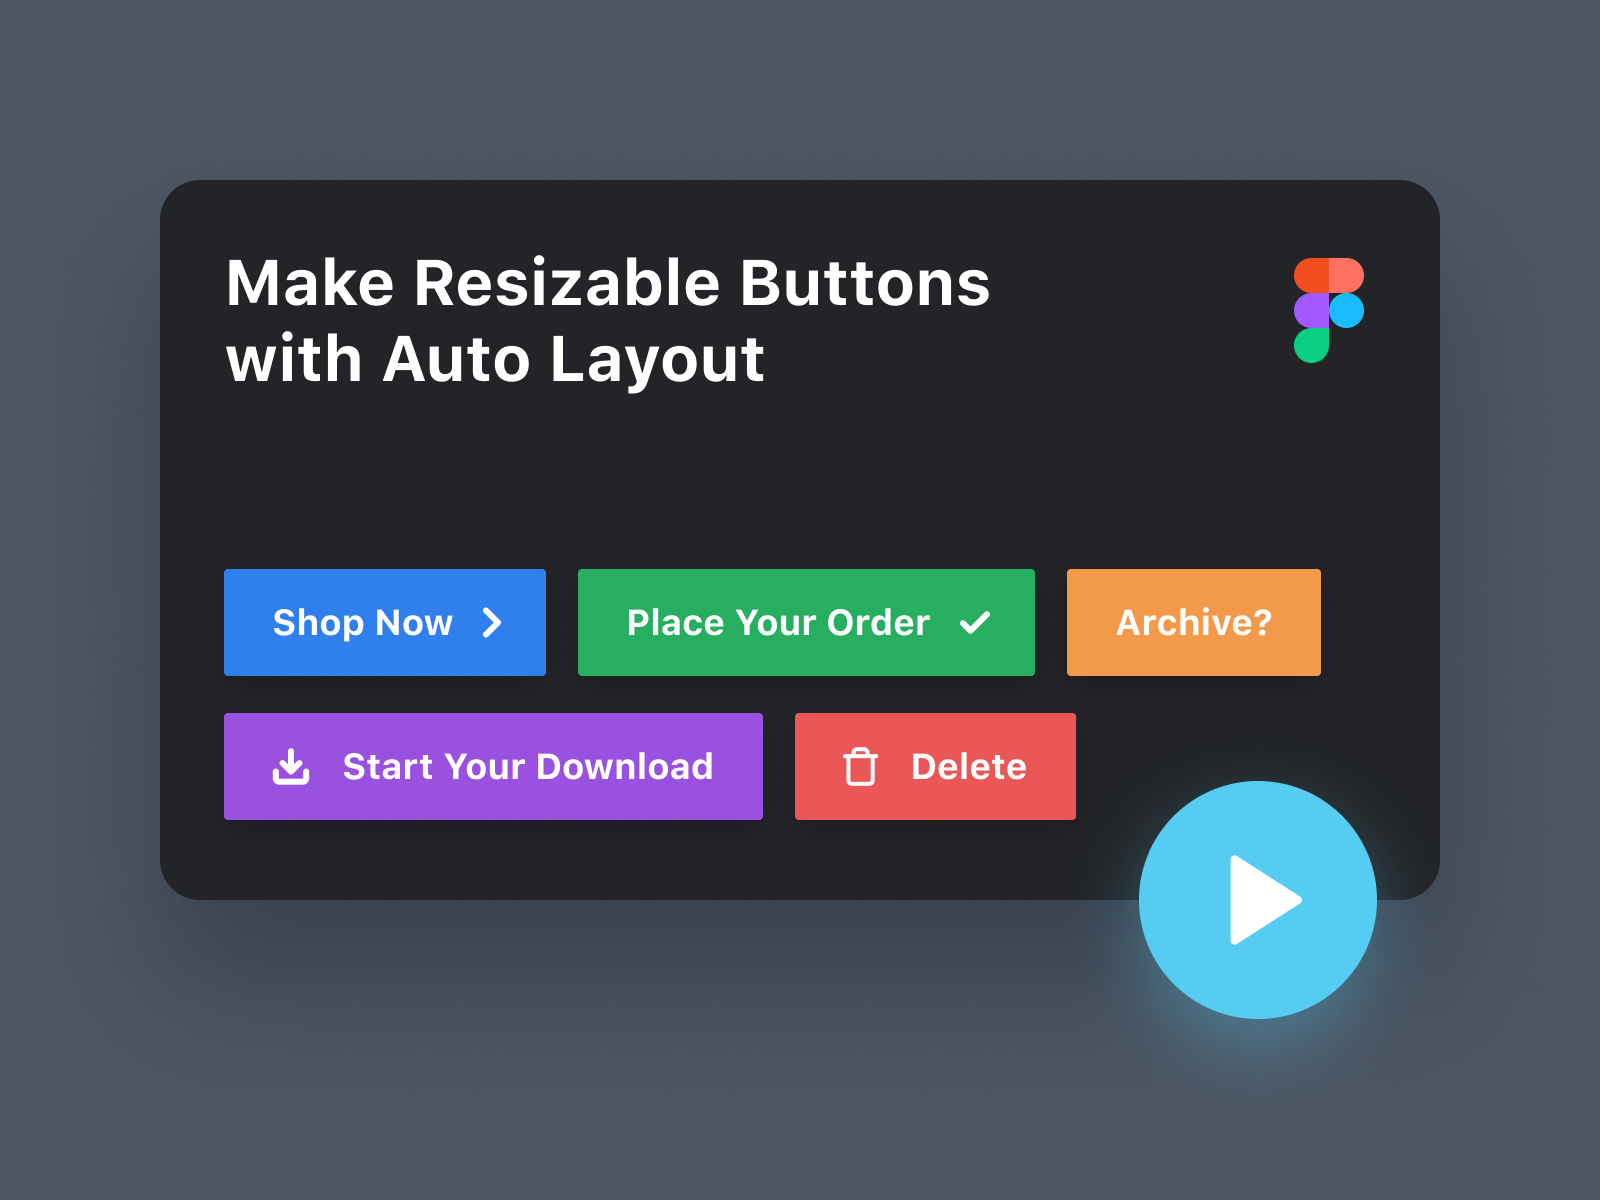 How to Make Resizable Buttons with Auto Layout in Figma